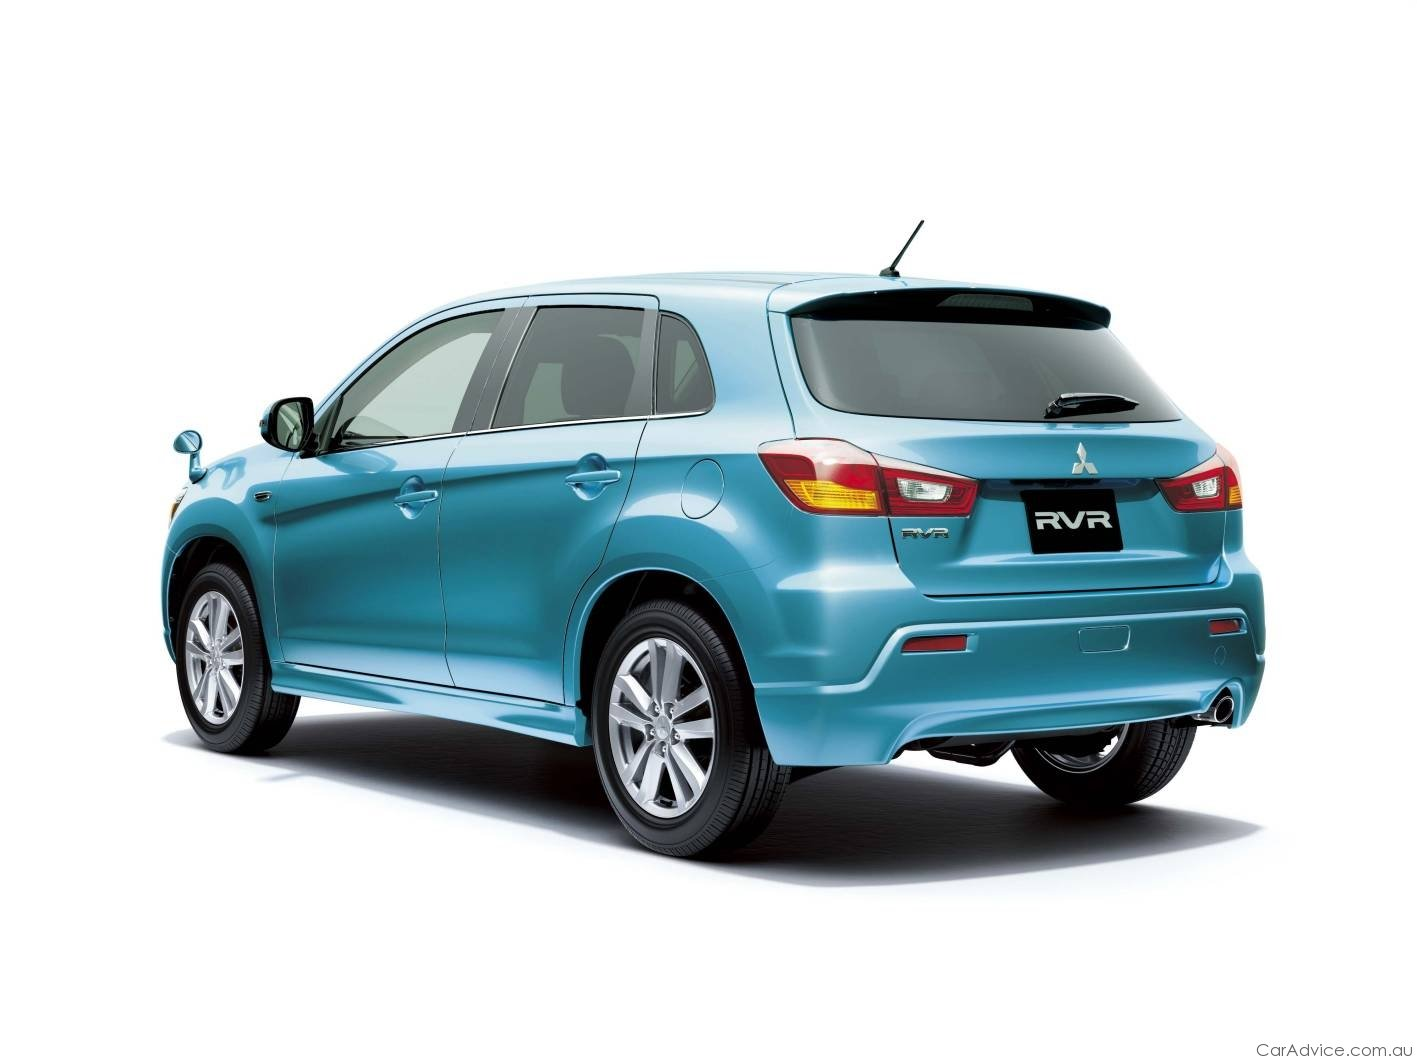 Mitsubishi RVR compact crossover launched - Photos